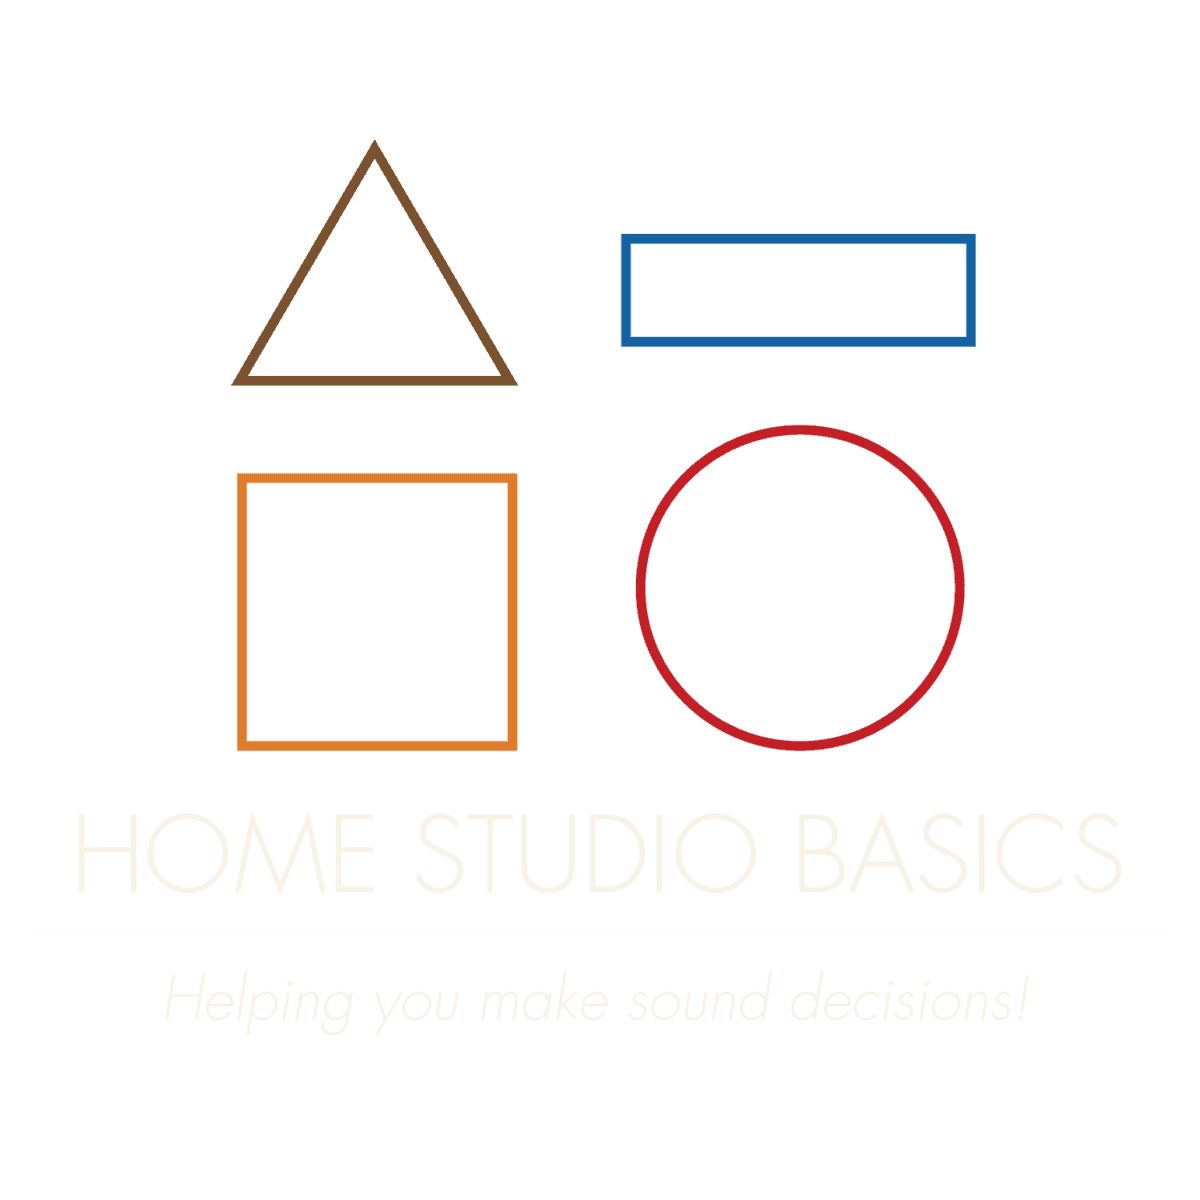 Home Studio Basics